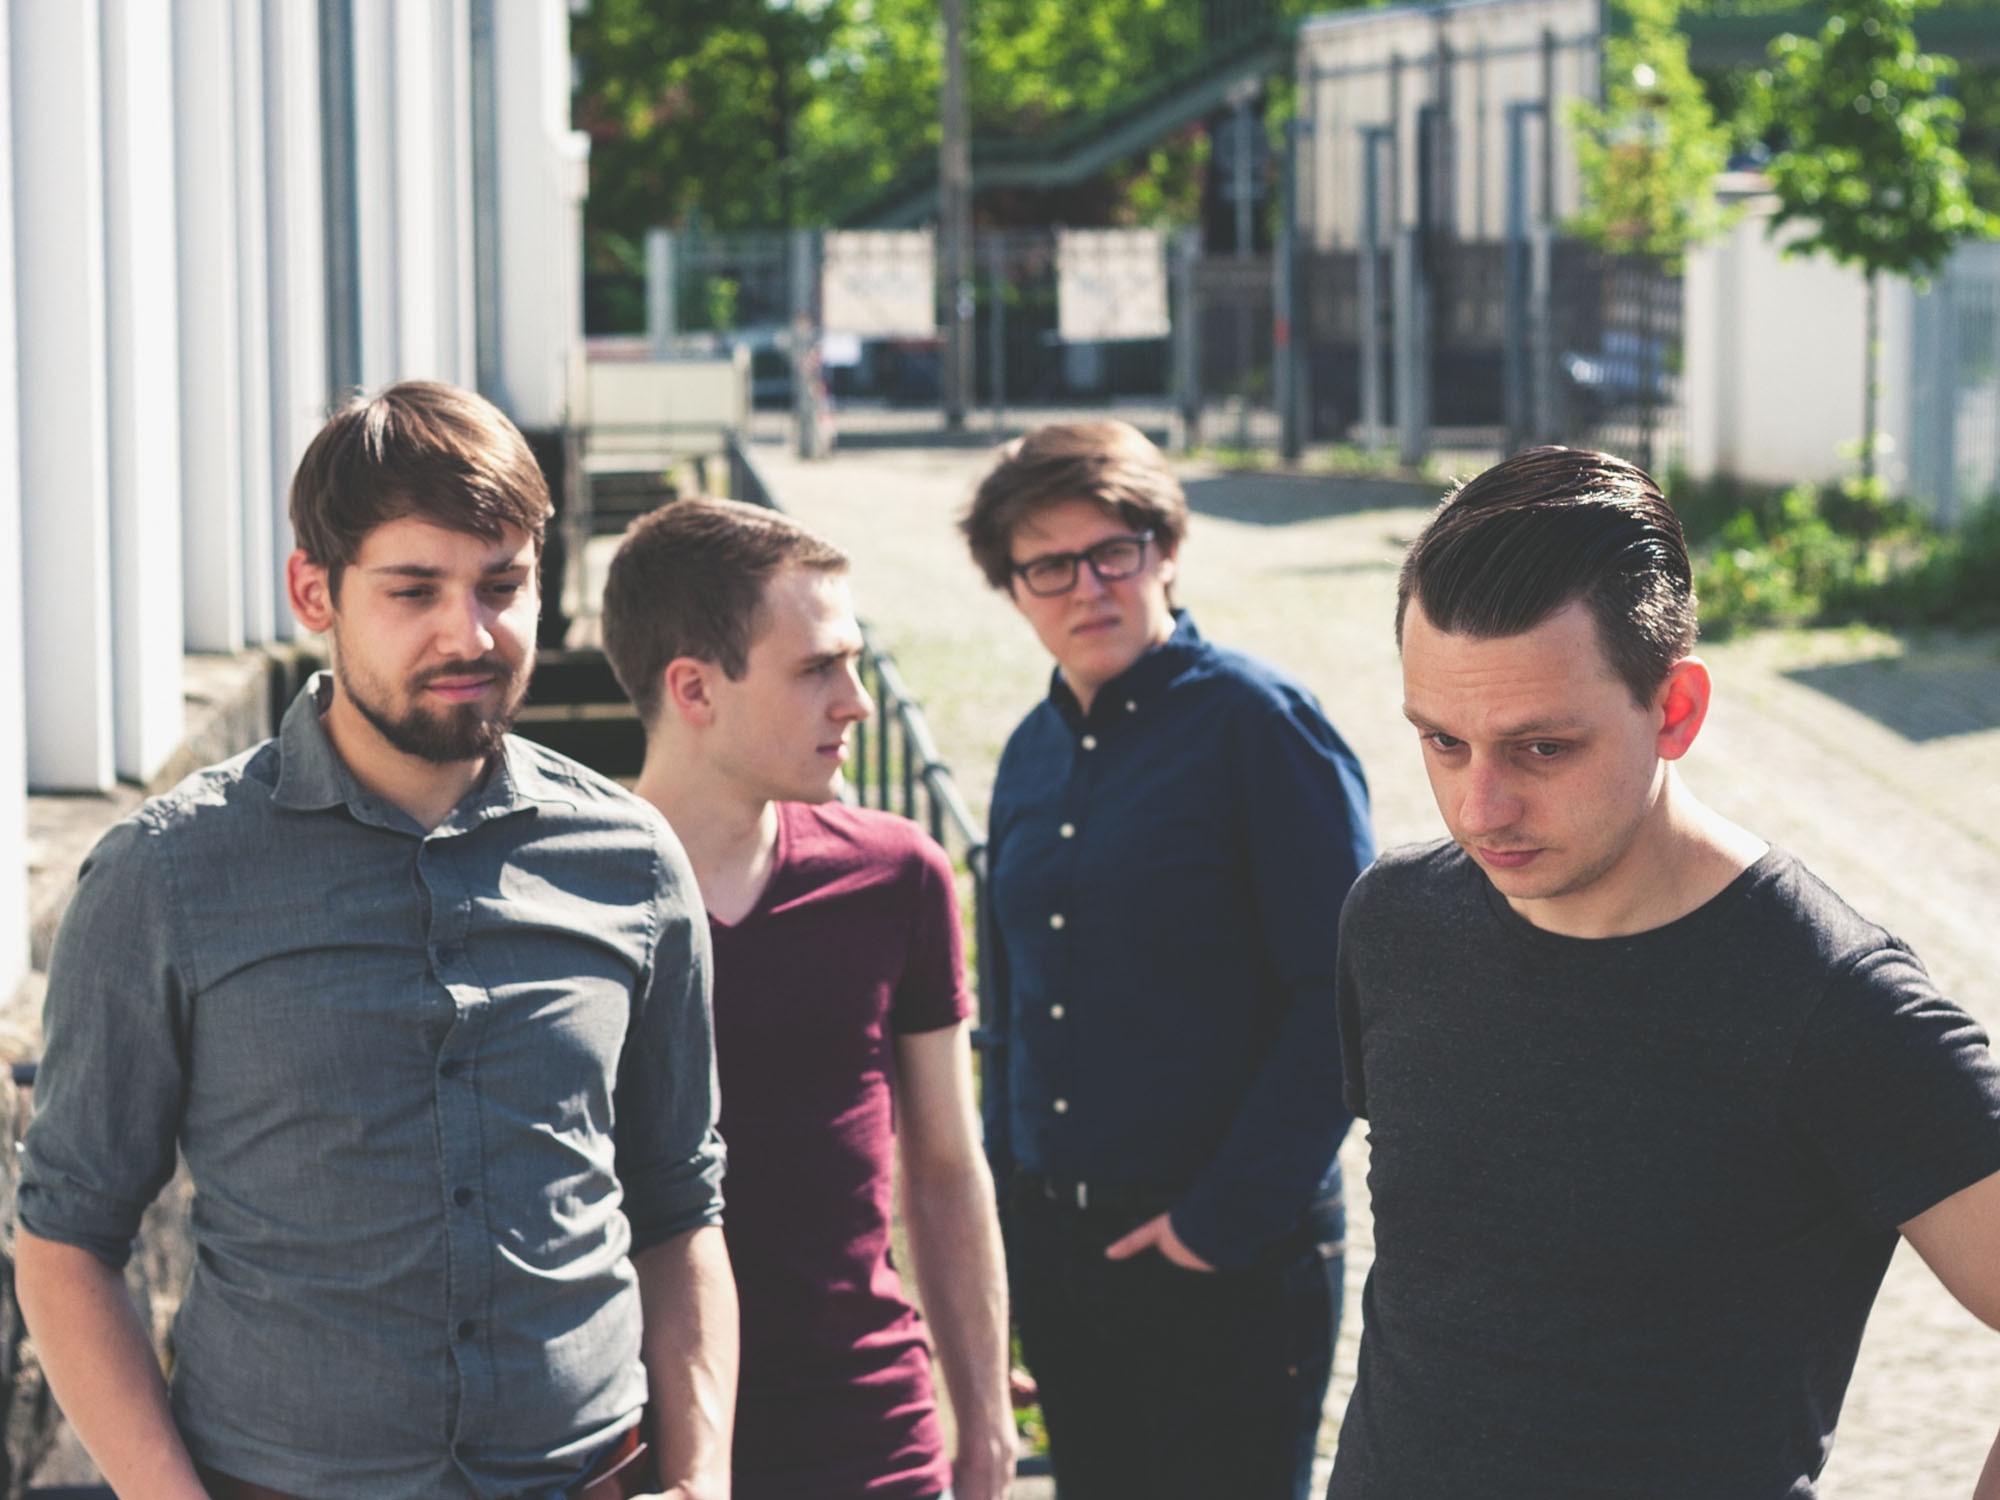 Jonethen Fuchs & The Woods beim Hutfestival